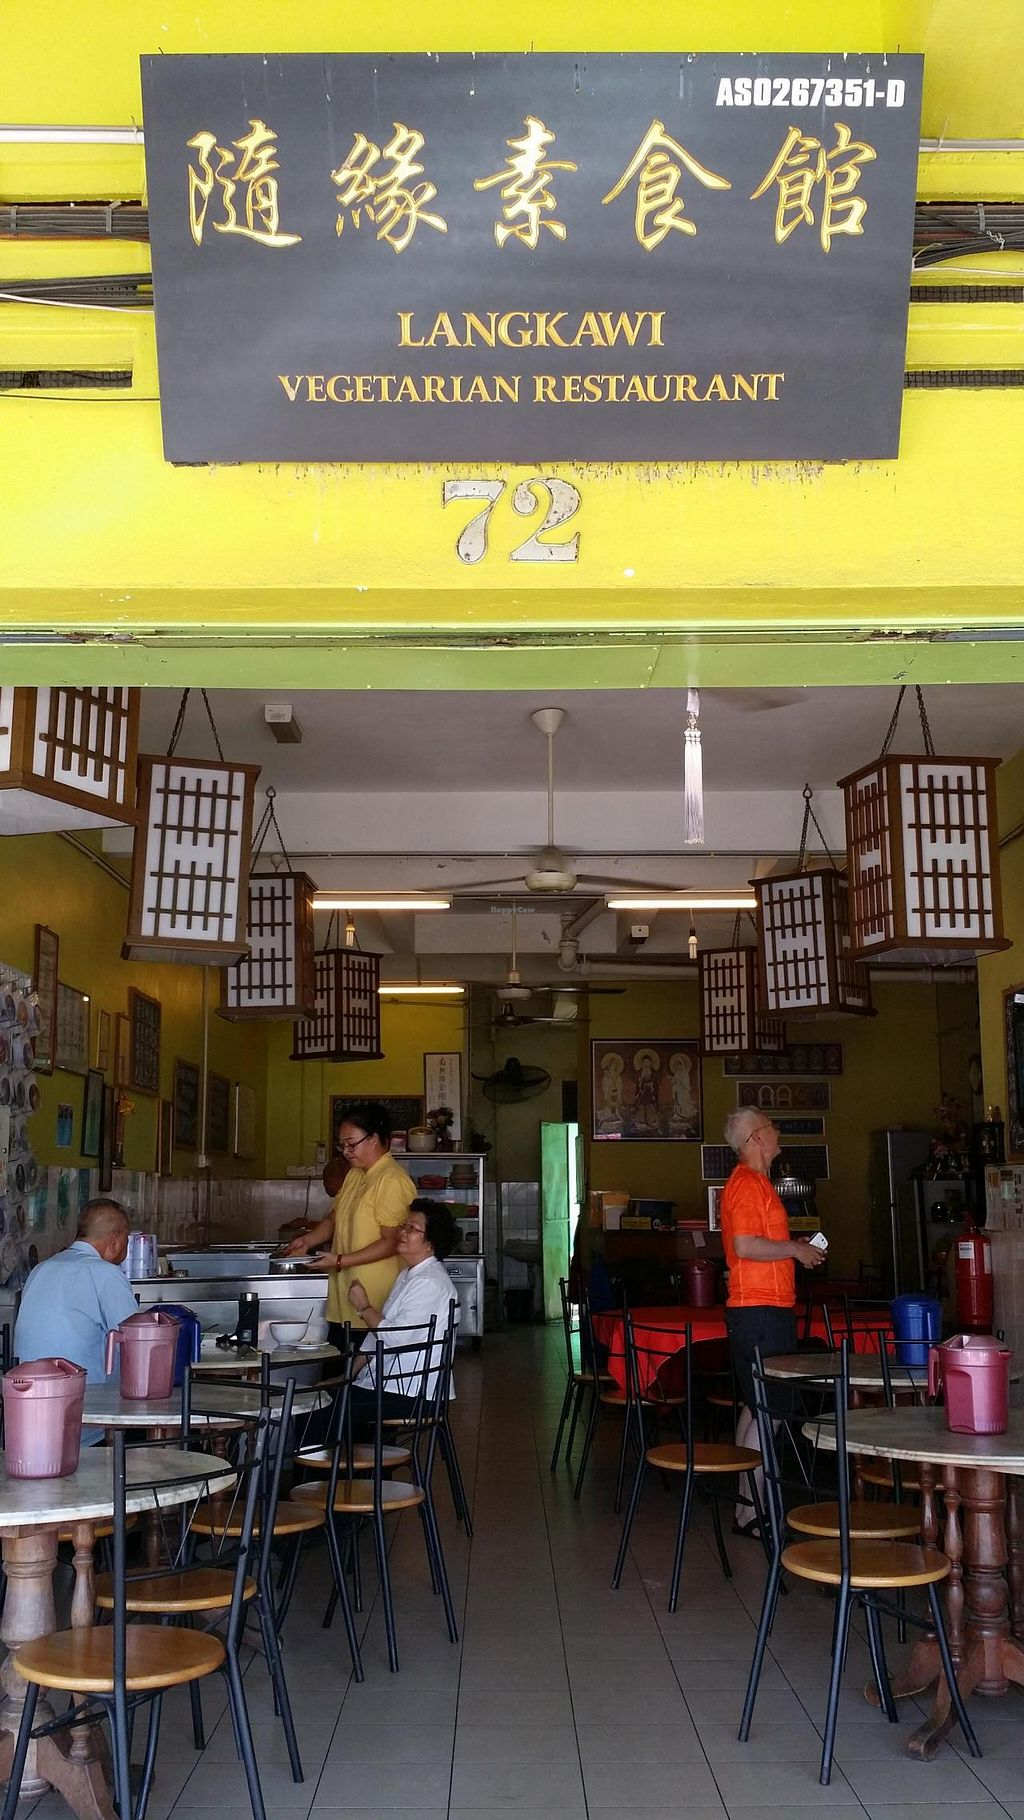 """Photo of Langkawi Vegetarian Restaurant  by <a href=""""/members/profile/walter007"""">walter007</a> <br/>Shop <br/> July 23, 2014  - <a href='/contact/abuse/image/49124/74765'>Report</a>"""